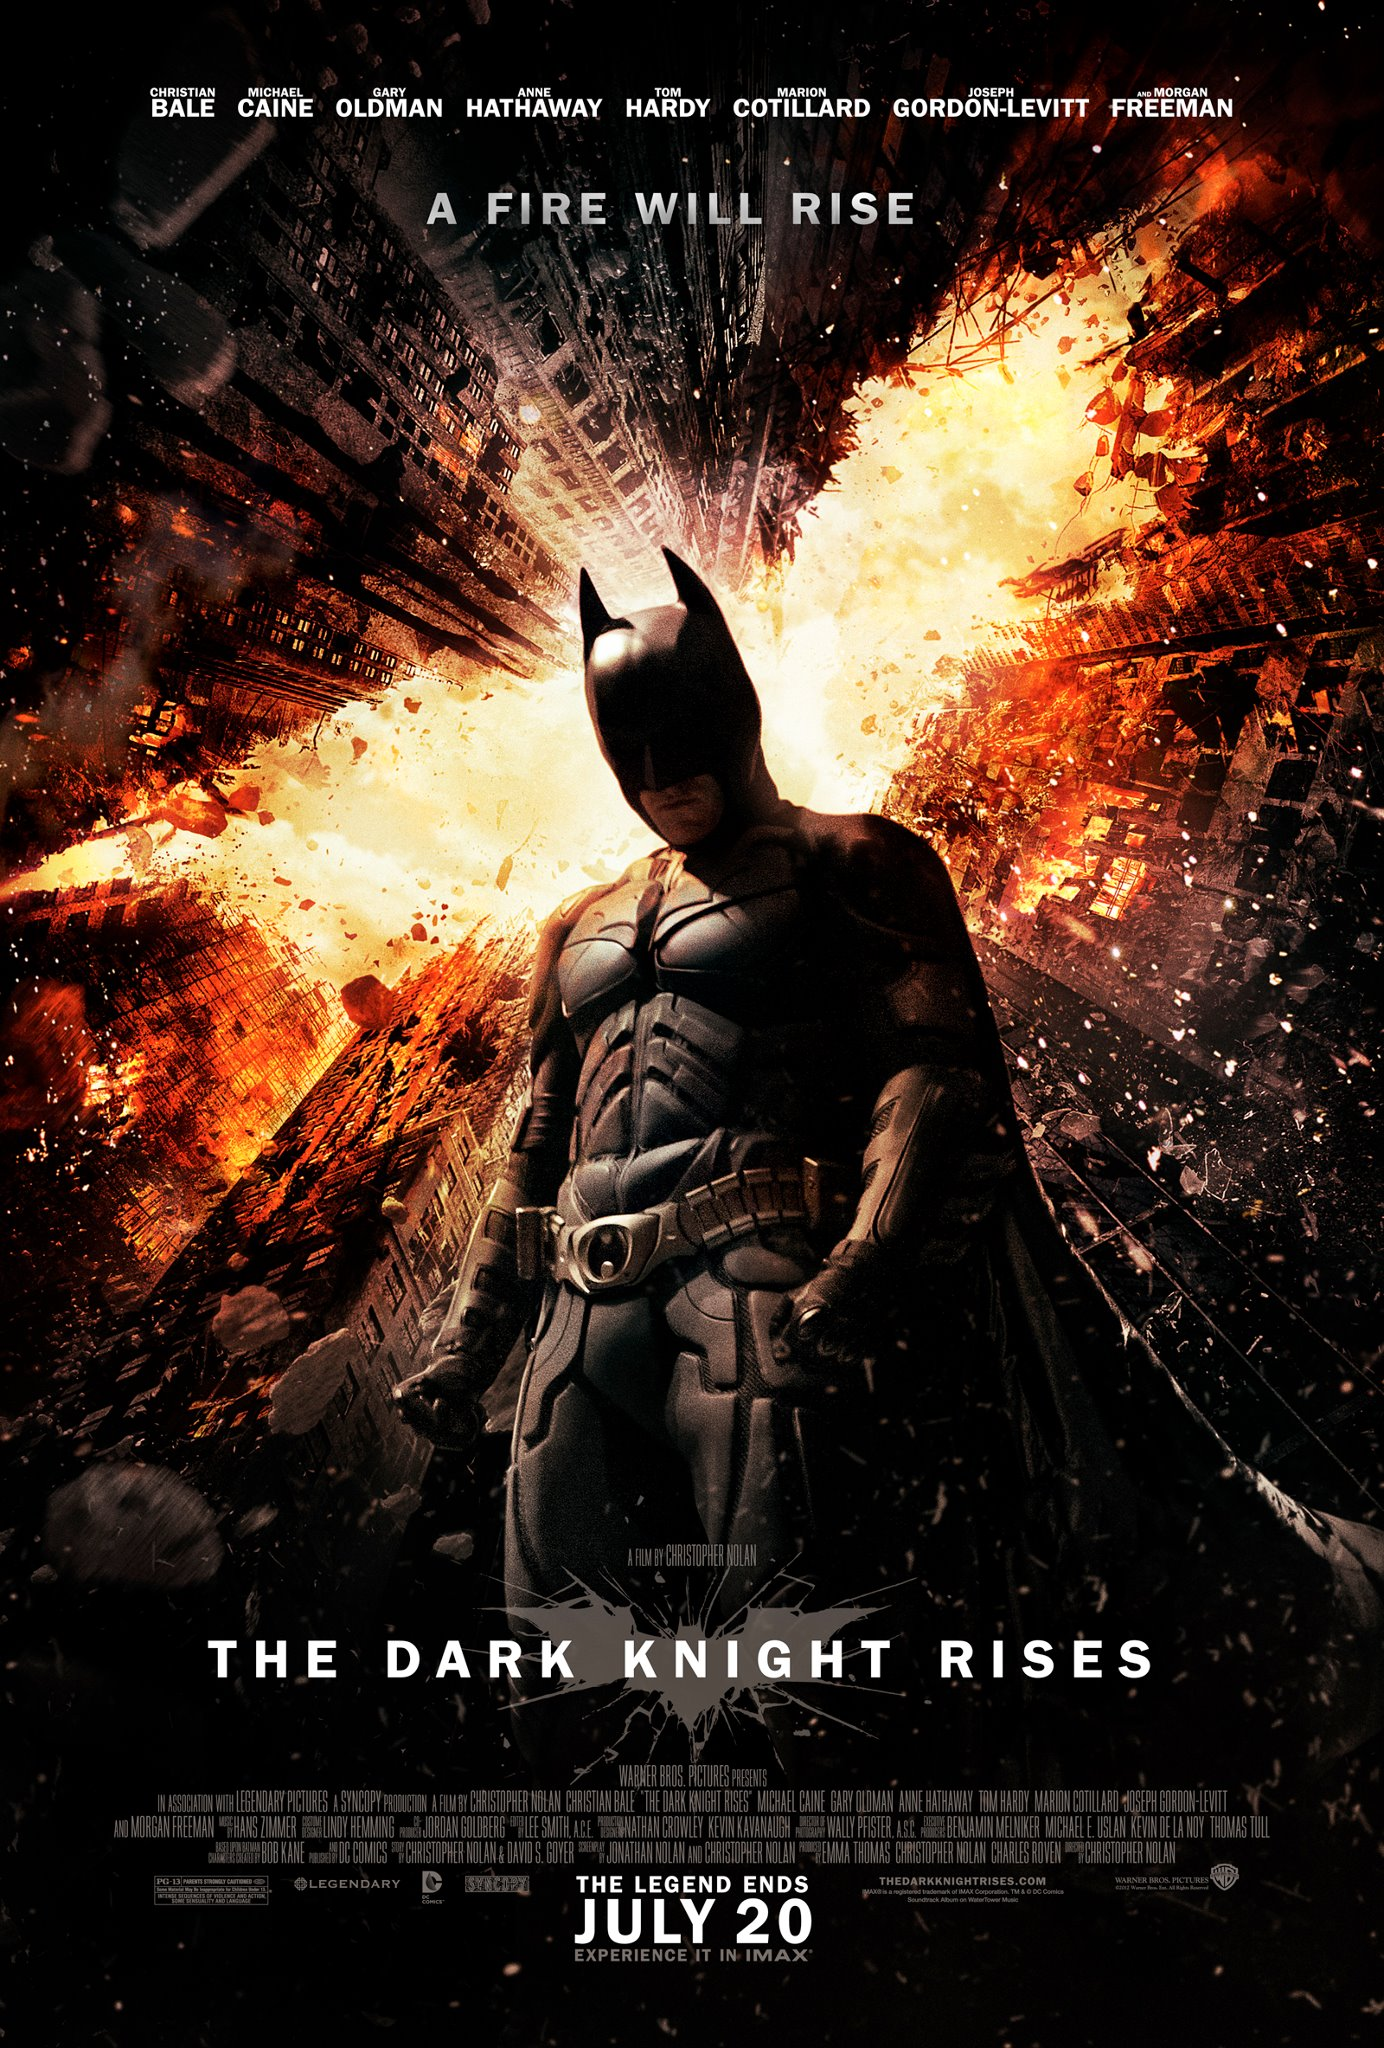 The Dark Knight Rises Fire Rises Poster